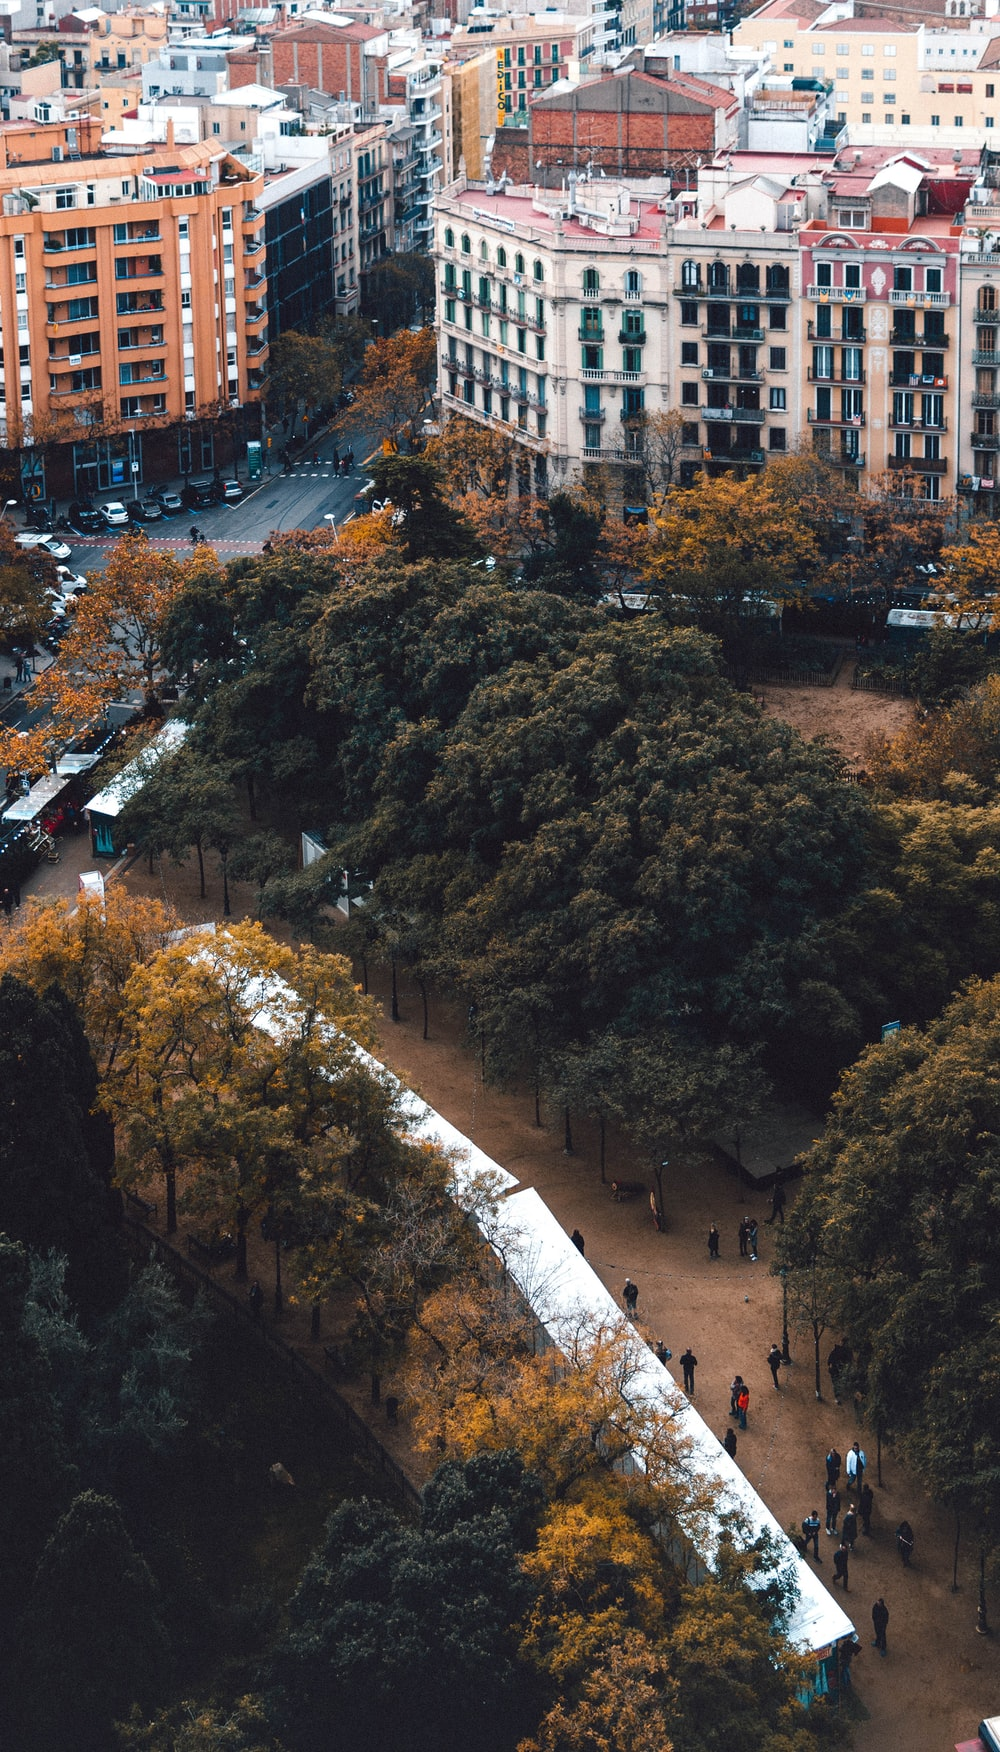 high angle photography of people walking between trees